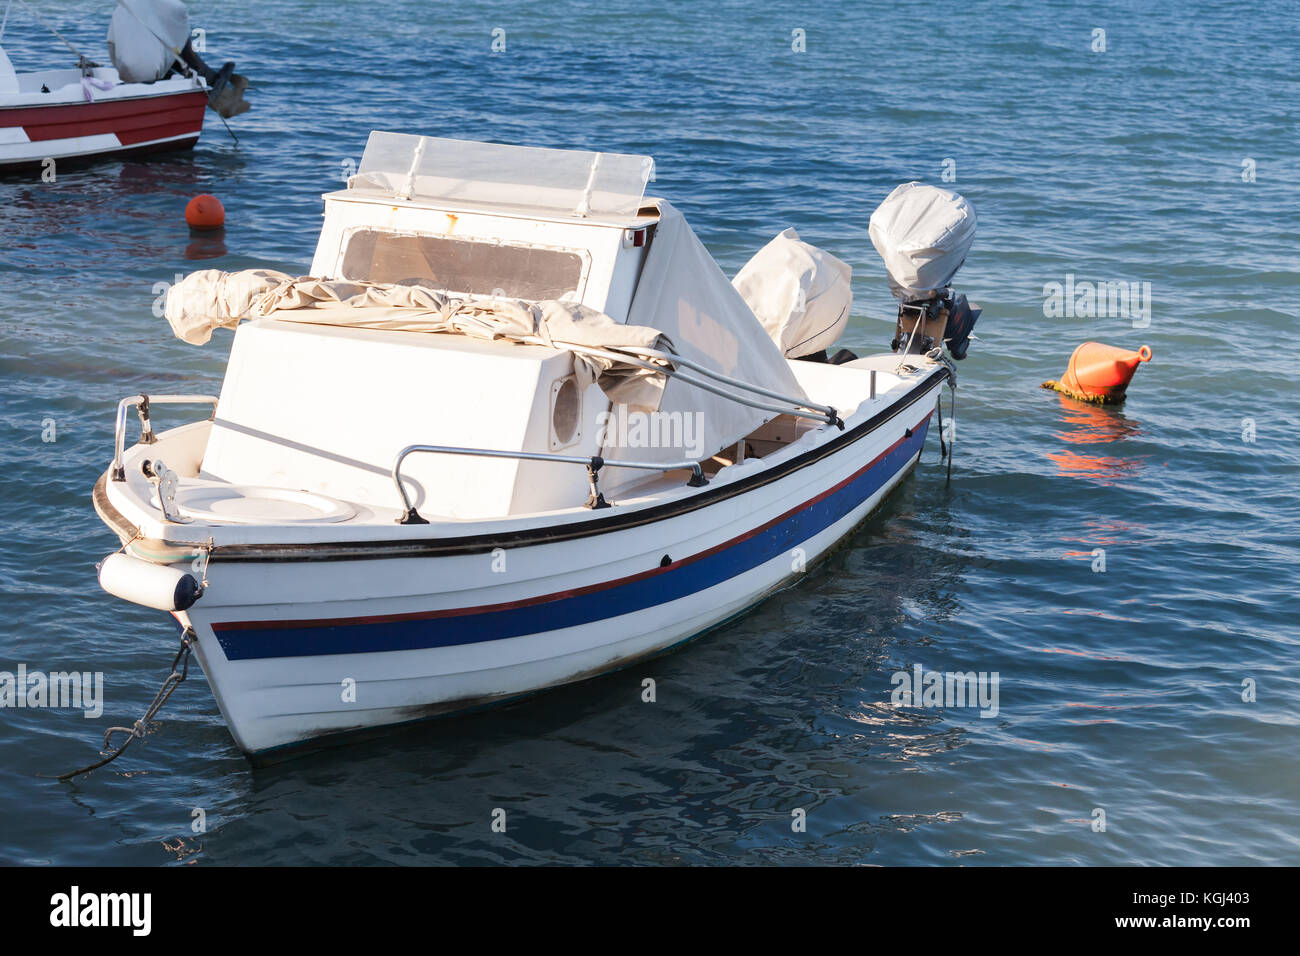 White wooden fishing boat moored in port of Zakynthos, Greek island in the Ionian Sea Stock Photo